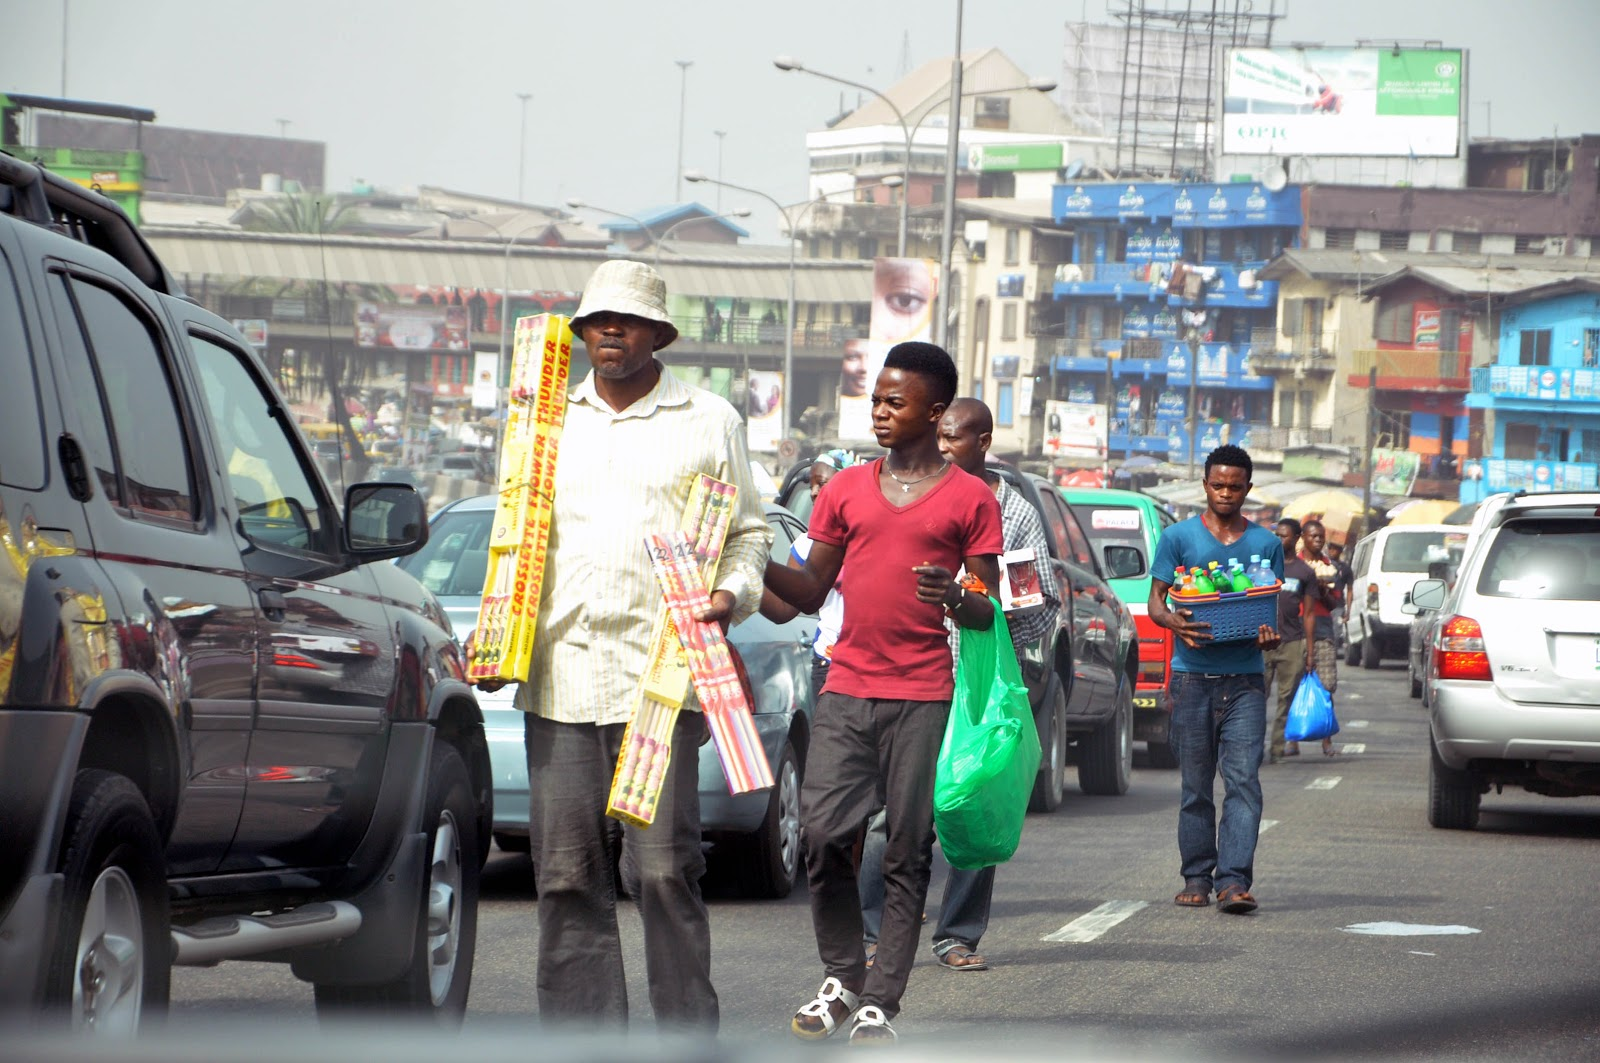 5 Things You Will Undoubtedly Miss When You Leave Nigeria